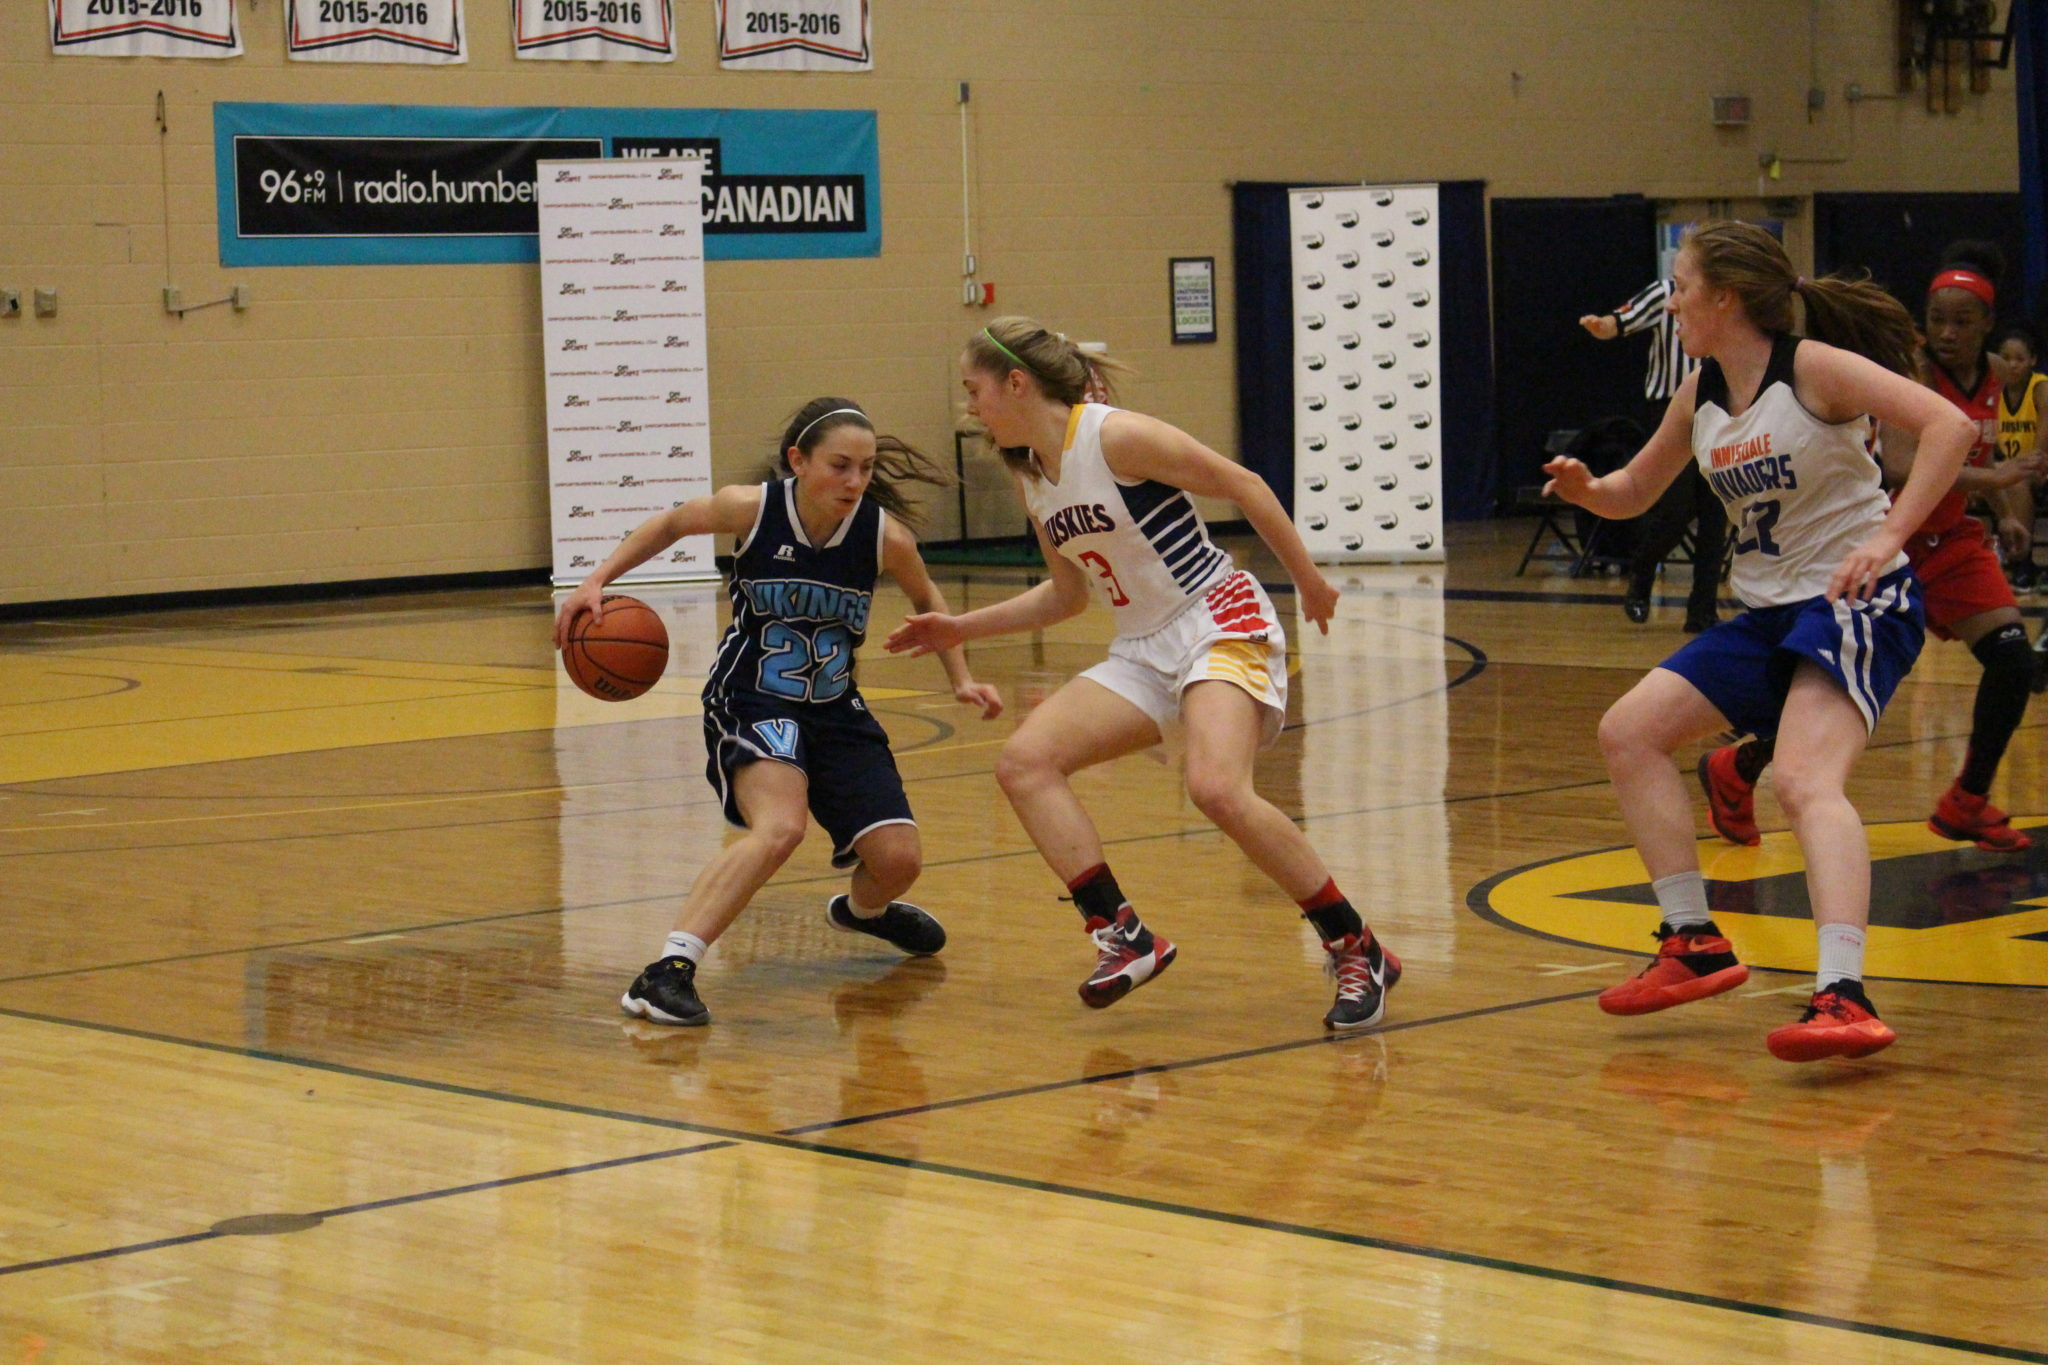 Canletes Provincial High School All-Star Showcase chock full of talented lady ballers